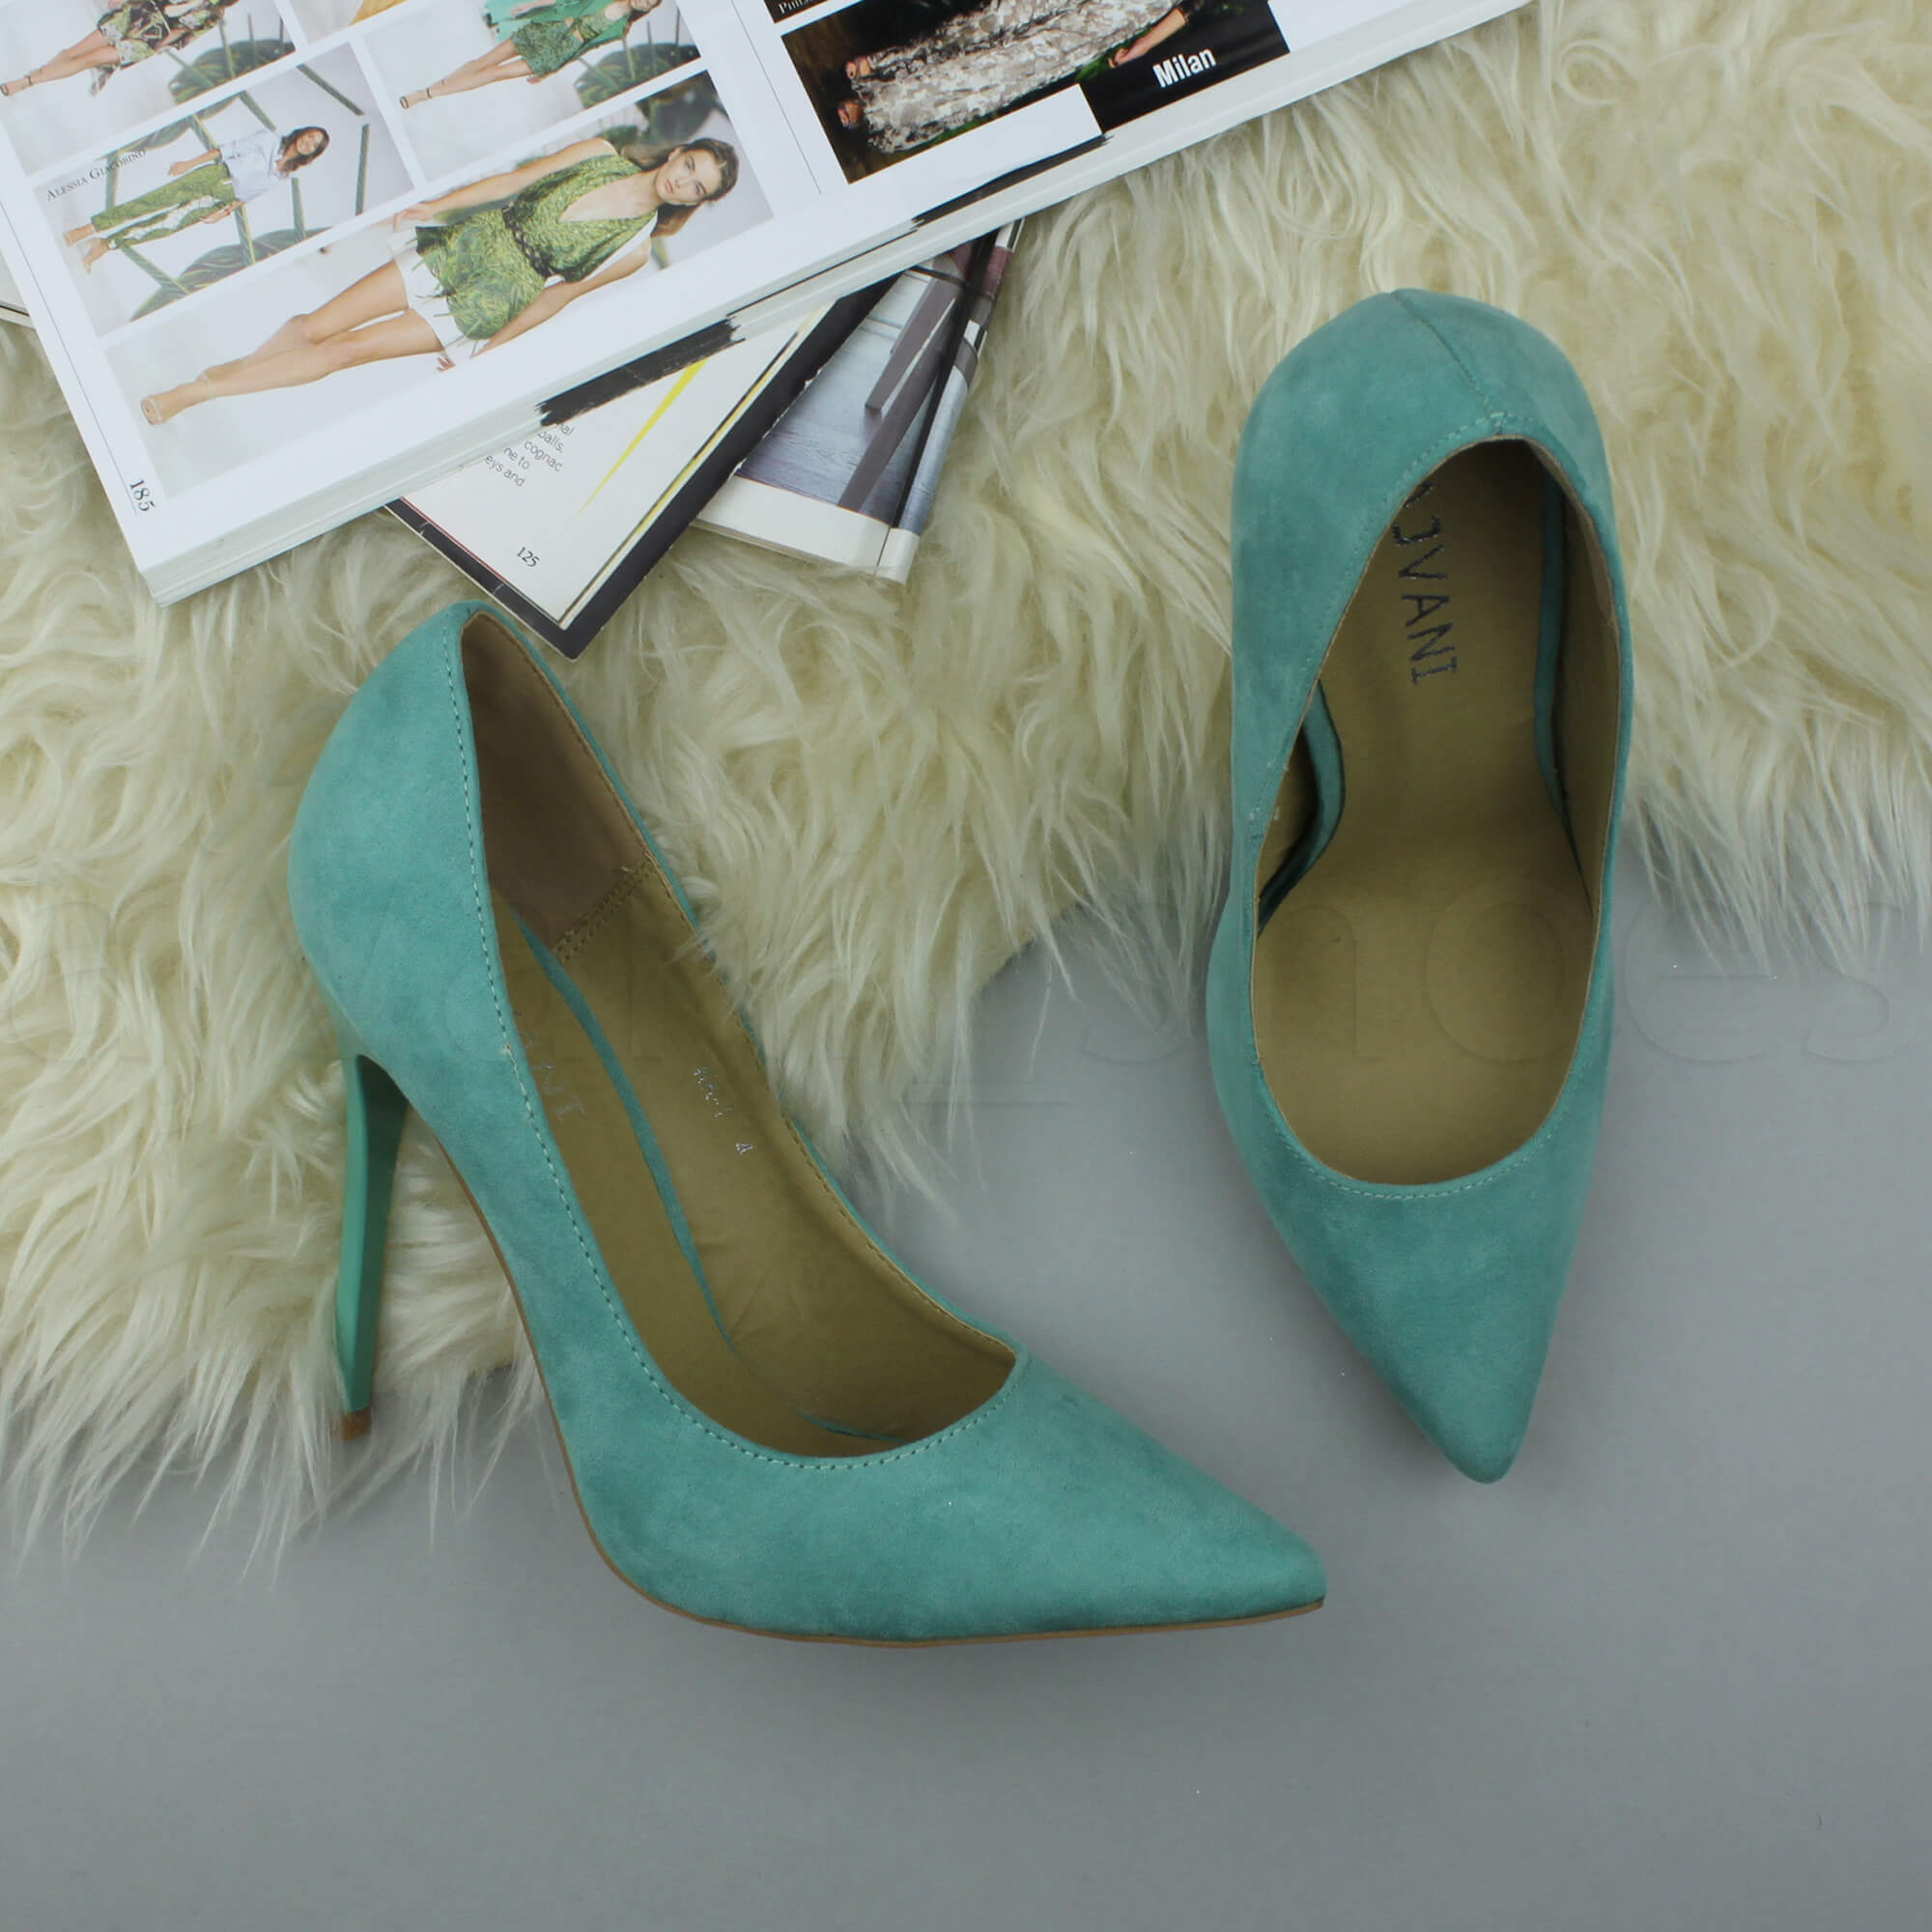 WOMENS-LADIES-HIGH-HEEL-POINTED-CONTRAST-COURT-SMART-PARTY-WORK-SHOES-PUMPS-SIZE thumbnail 147